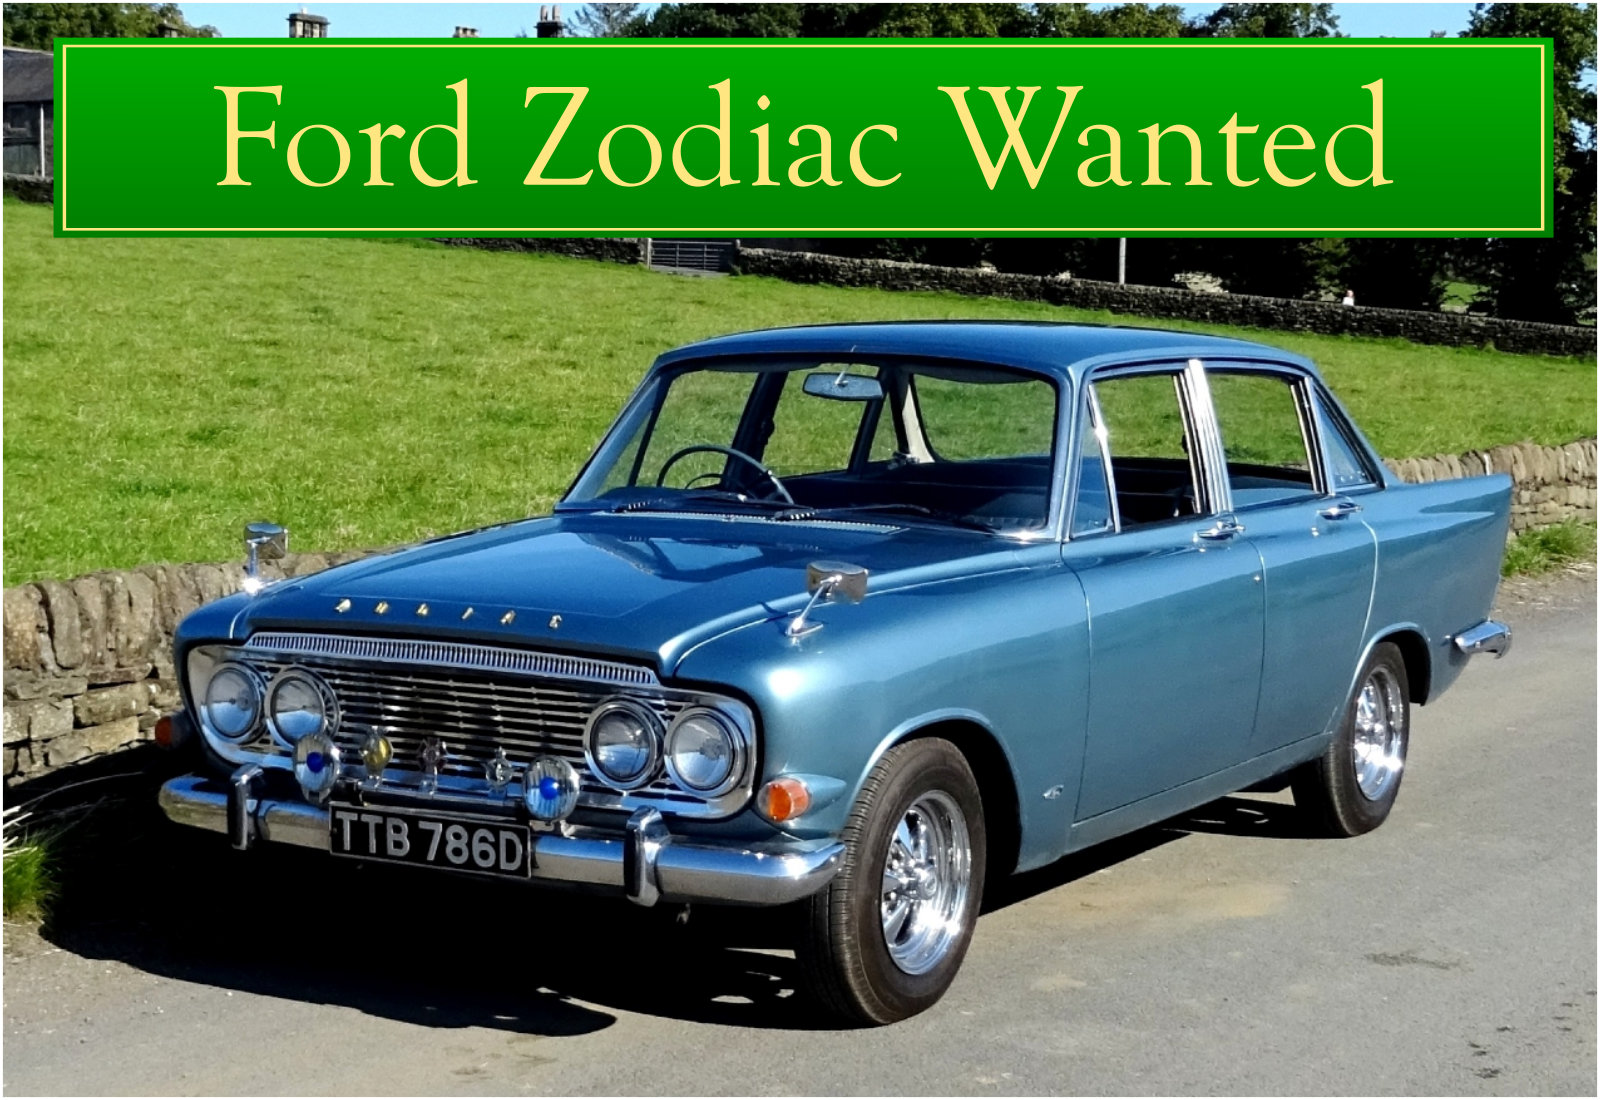 VAUXHALL CRESTA WANTED, CLASSIC CARS WANTED INSTANT PAYMENT Wanted (picture 5 of 6)